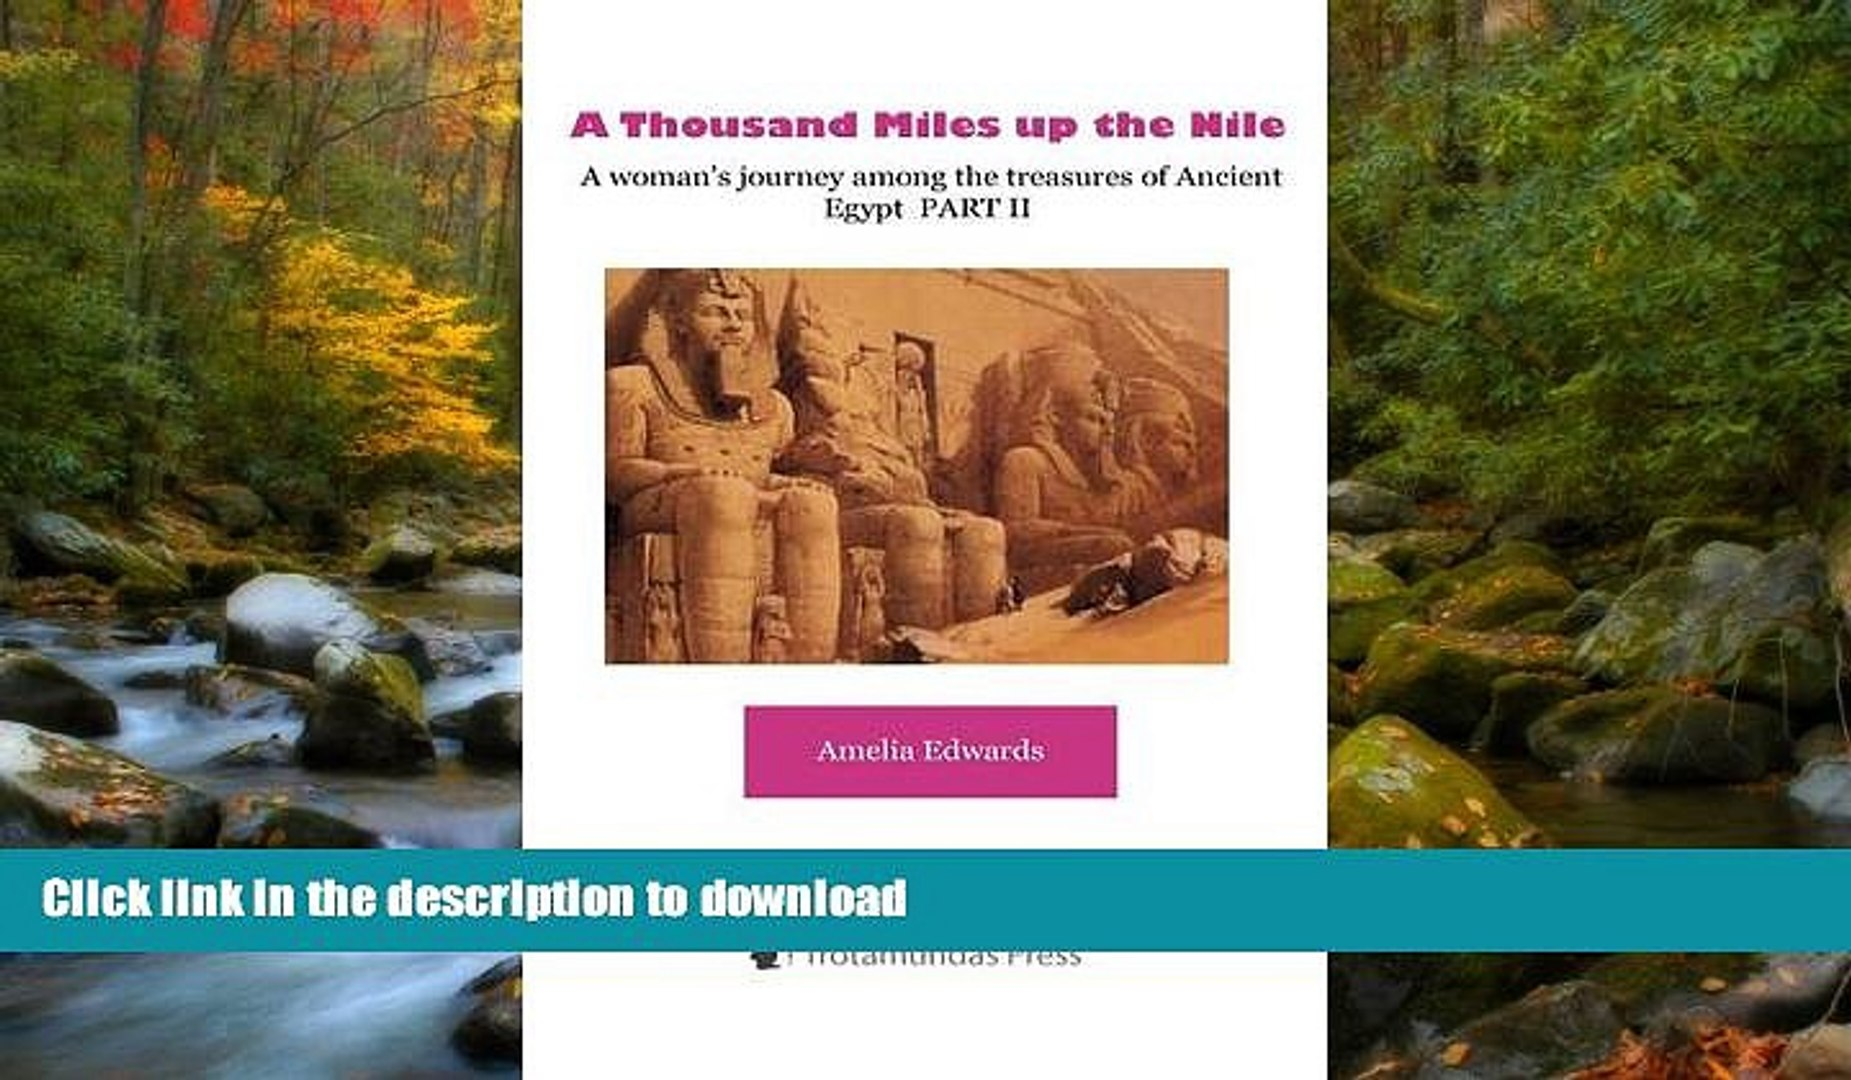 READ  A Thousand Miles up the Nile  - A woman s journey among the treasures of Ancient Egypt PART